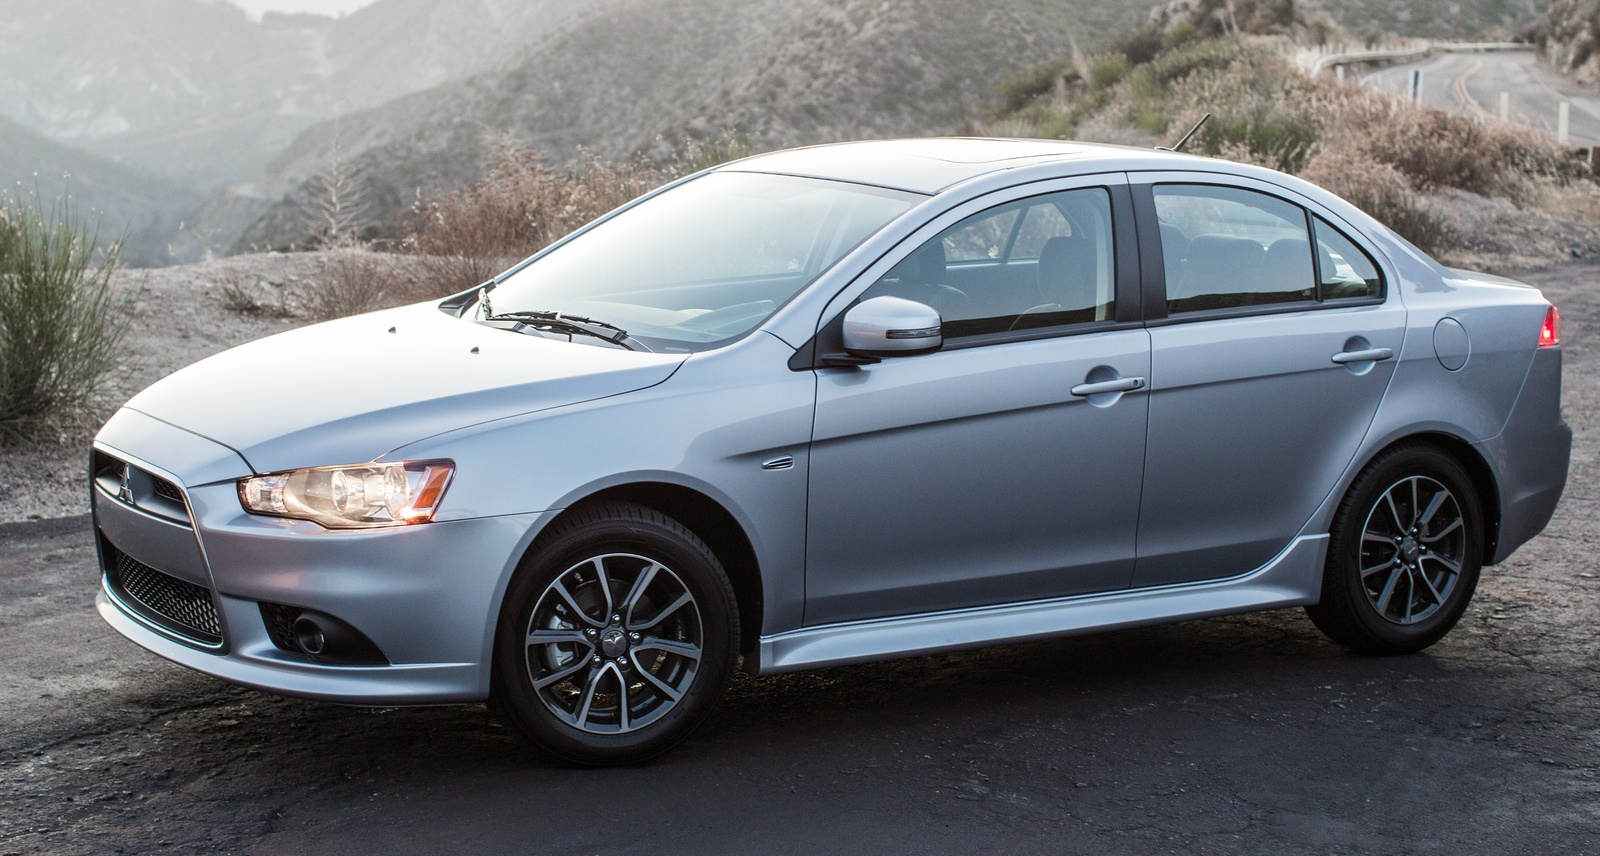 2015 Mitsubishi Lancer Review Cargurus